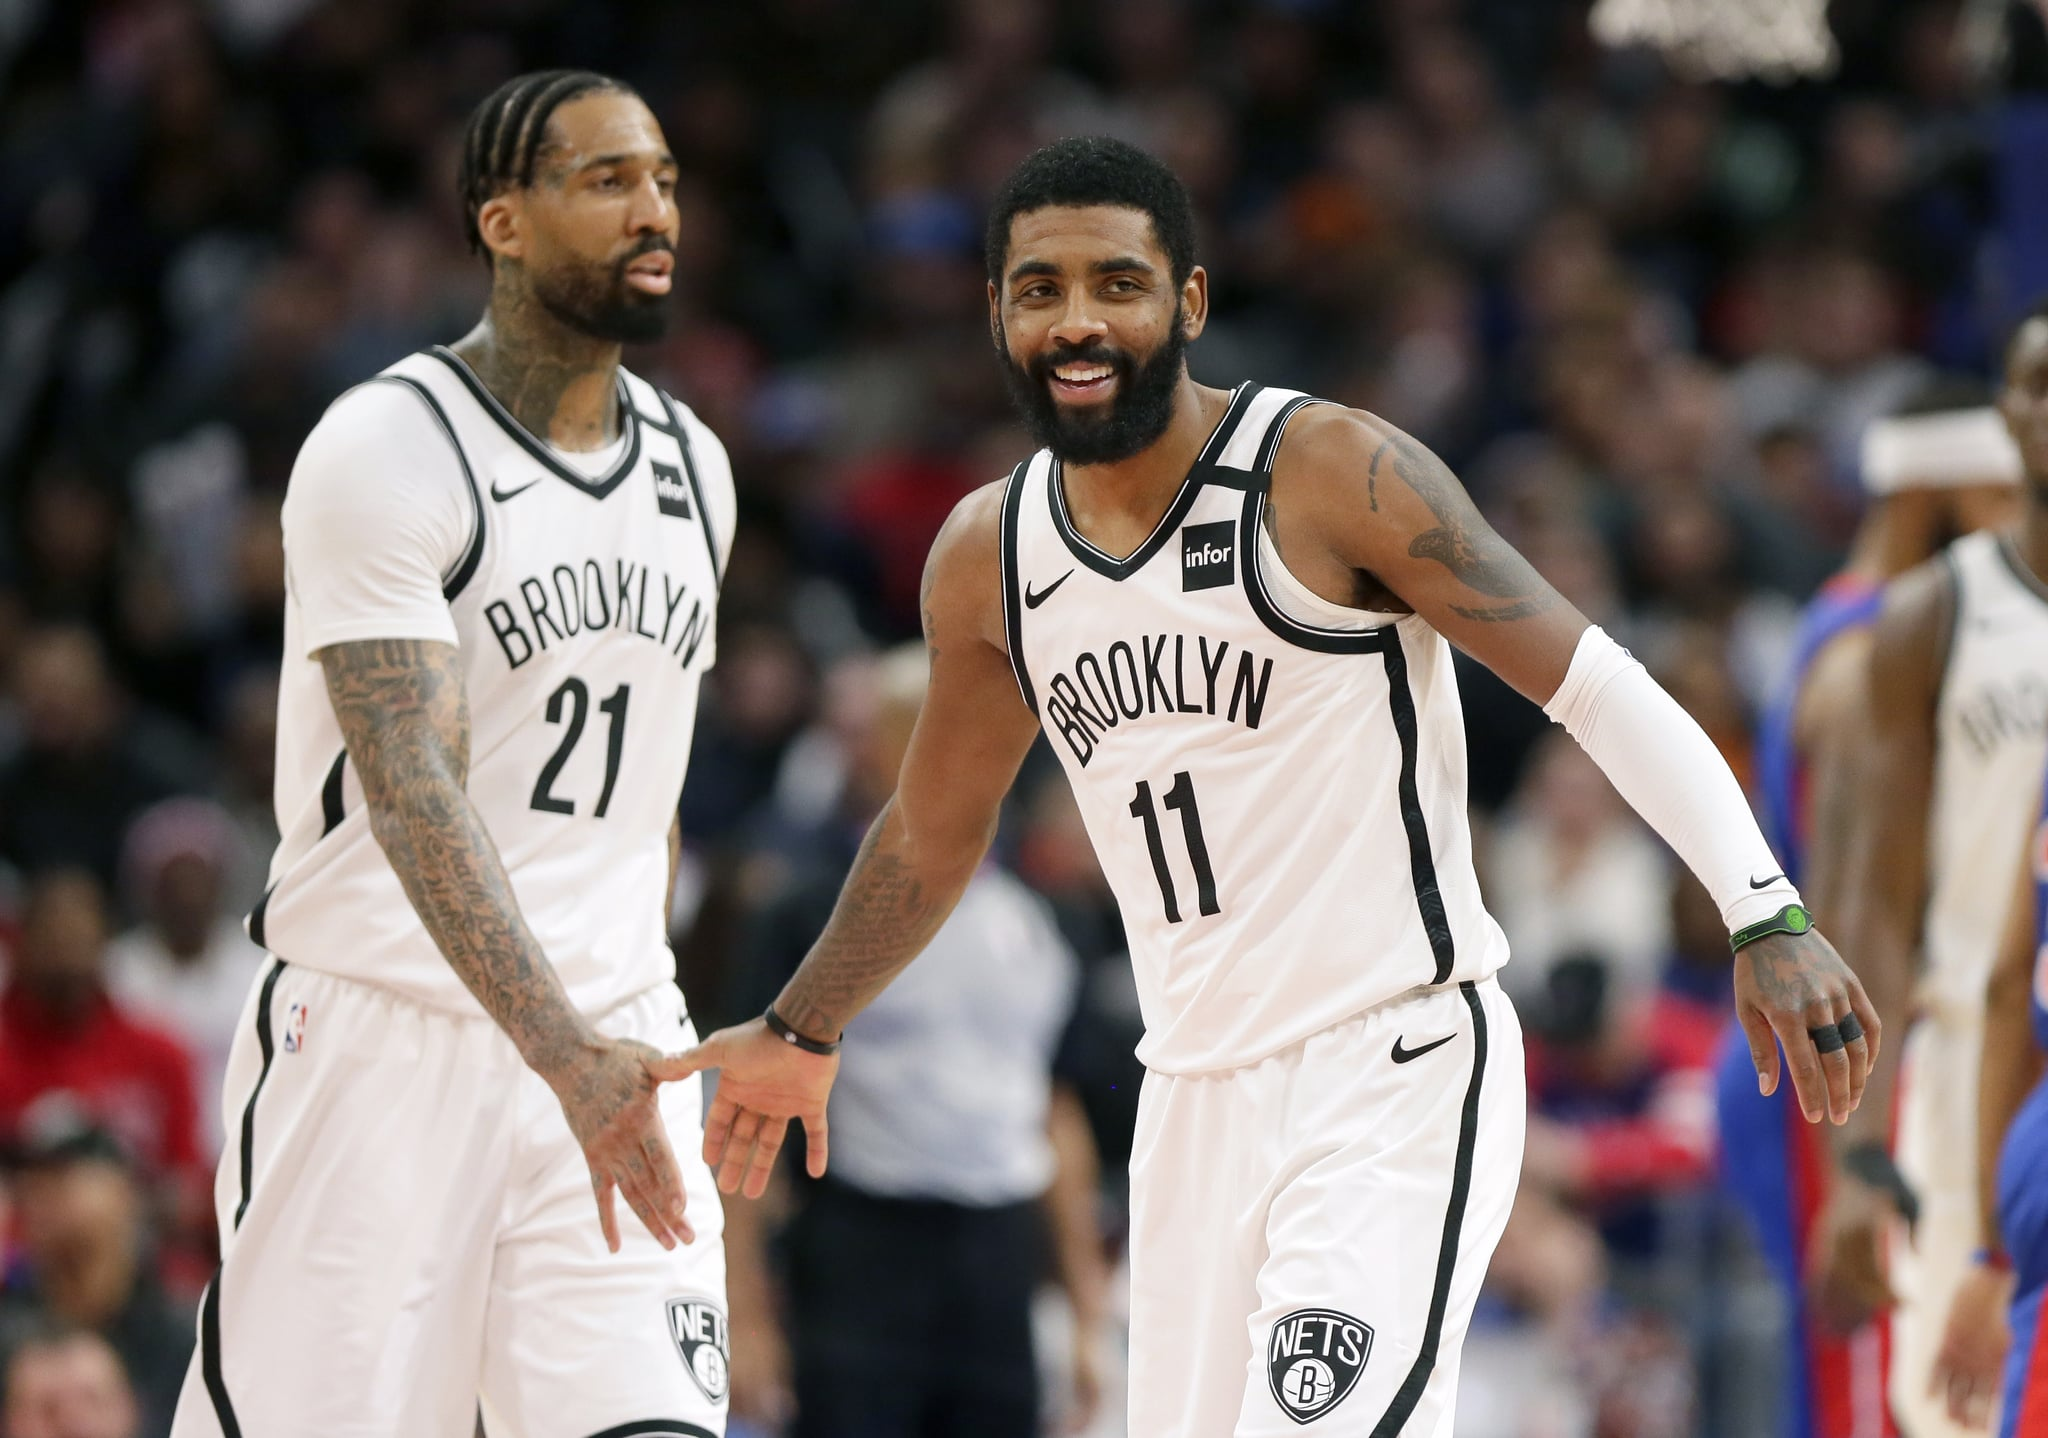 DETROIT, MI -  JANUARY 25:  Kyrie Irving #11 of the Brooklyn Nets celebrates with Wilson Chandler #21 of the Brooklyn Nets during the second half of a game against the Detroit Pistons at Little Caesars Arena on January 25, 2020, in Detroit, Michigan. The Nets defeated the Pistons 121-111 in overtime. NOTE TO USER: User expressly acknowledges and agrees that, by downloading and or using this photograph, User is consenting to the terms and conditions of the Getty Images License Agreement. (Photo by Duane Burleson/Getty Images)